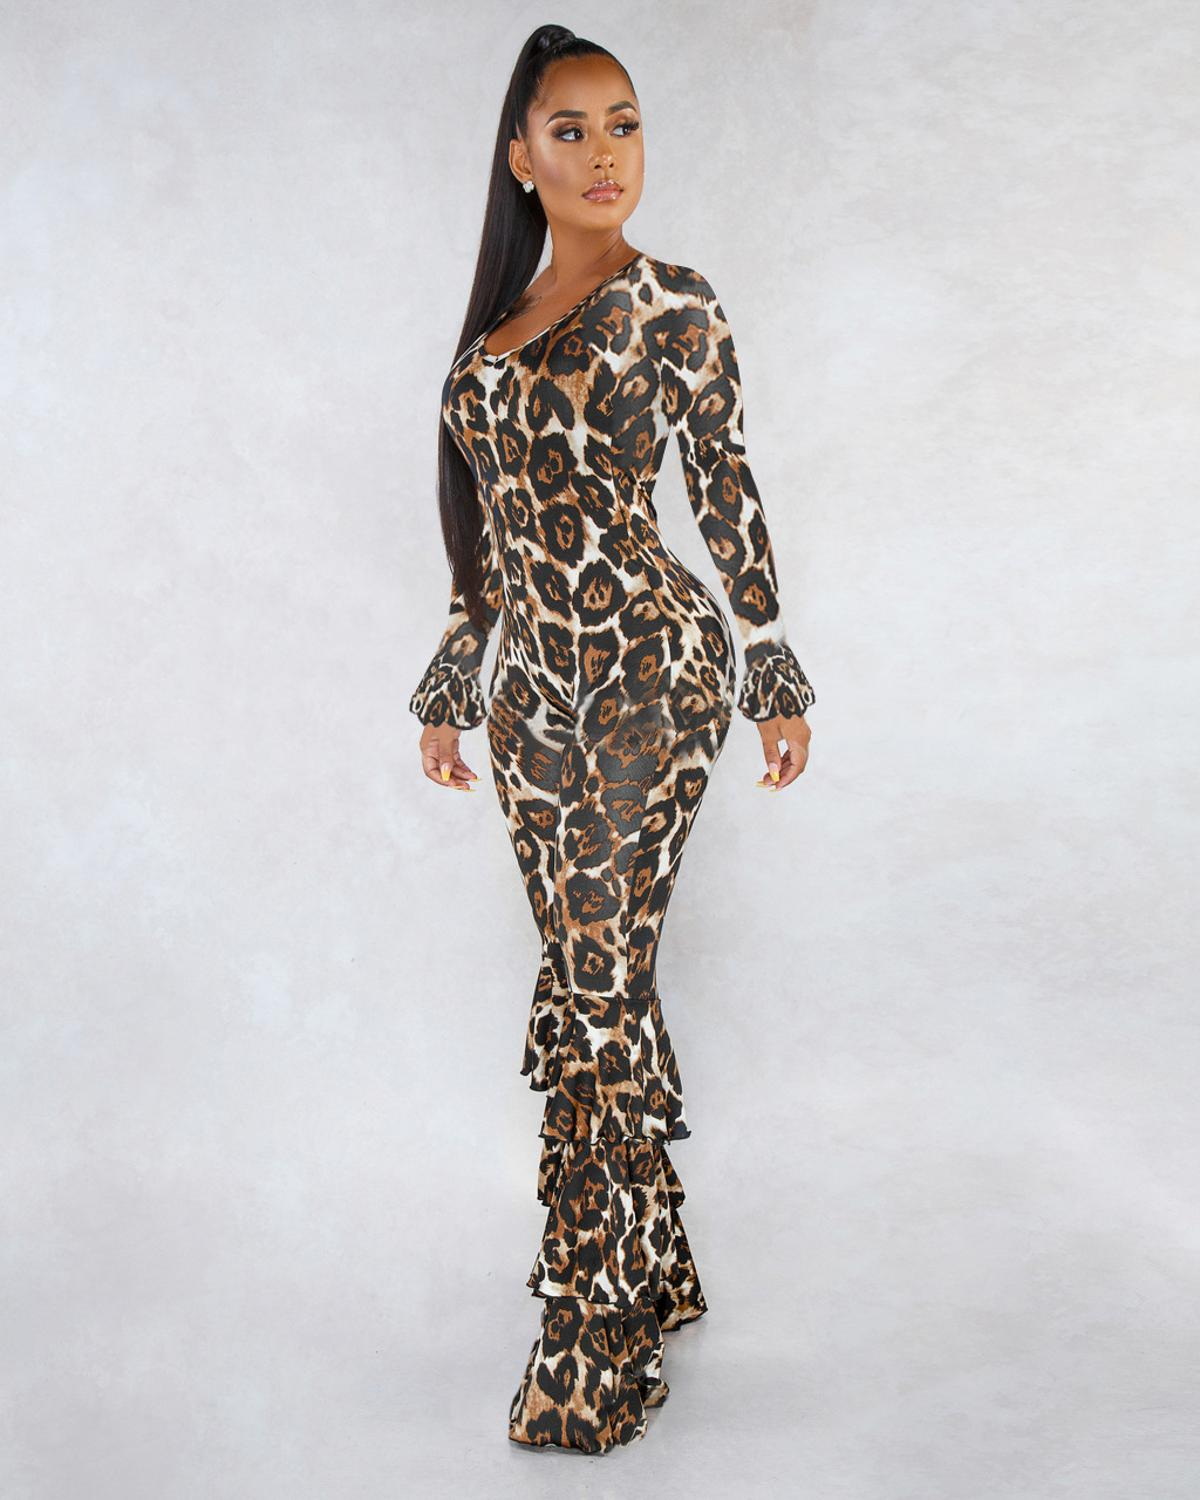 Overalls For Women Elegant Long Pant Sexy Jumpsuits Plus Size Tight Bodycon White Leopard Rompers And Jumpsuit Clothing Ladies